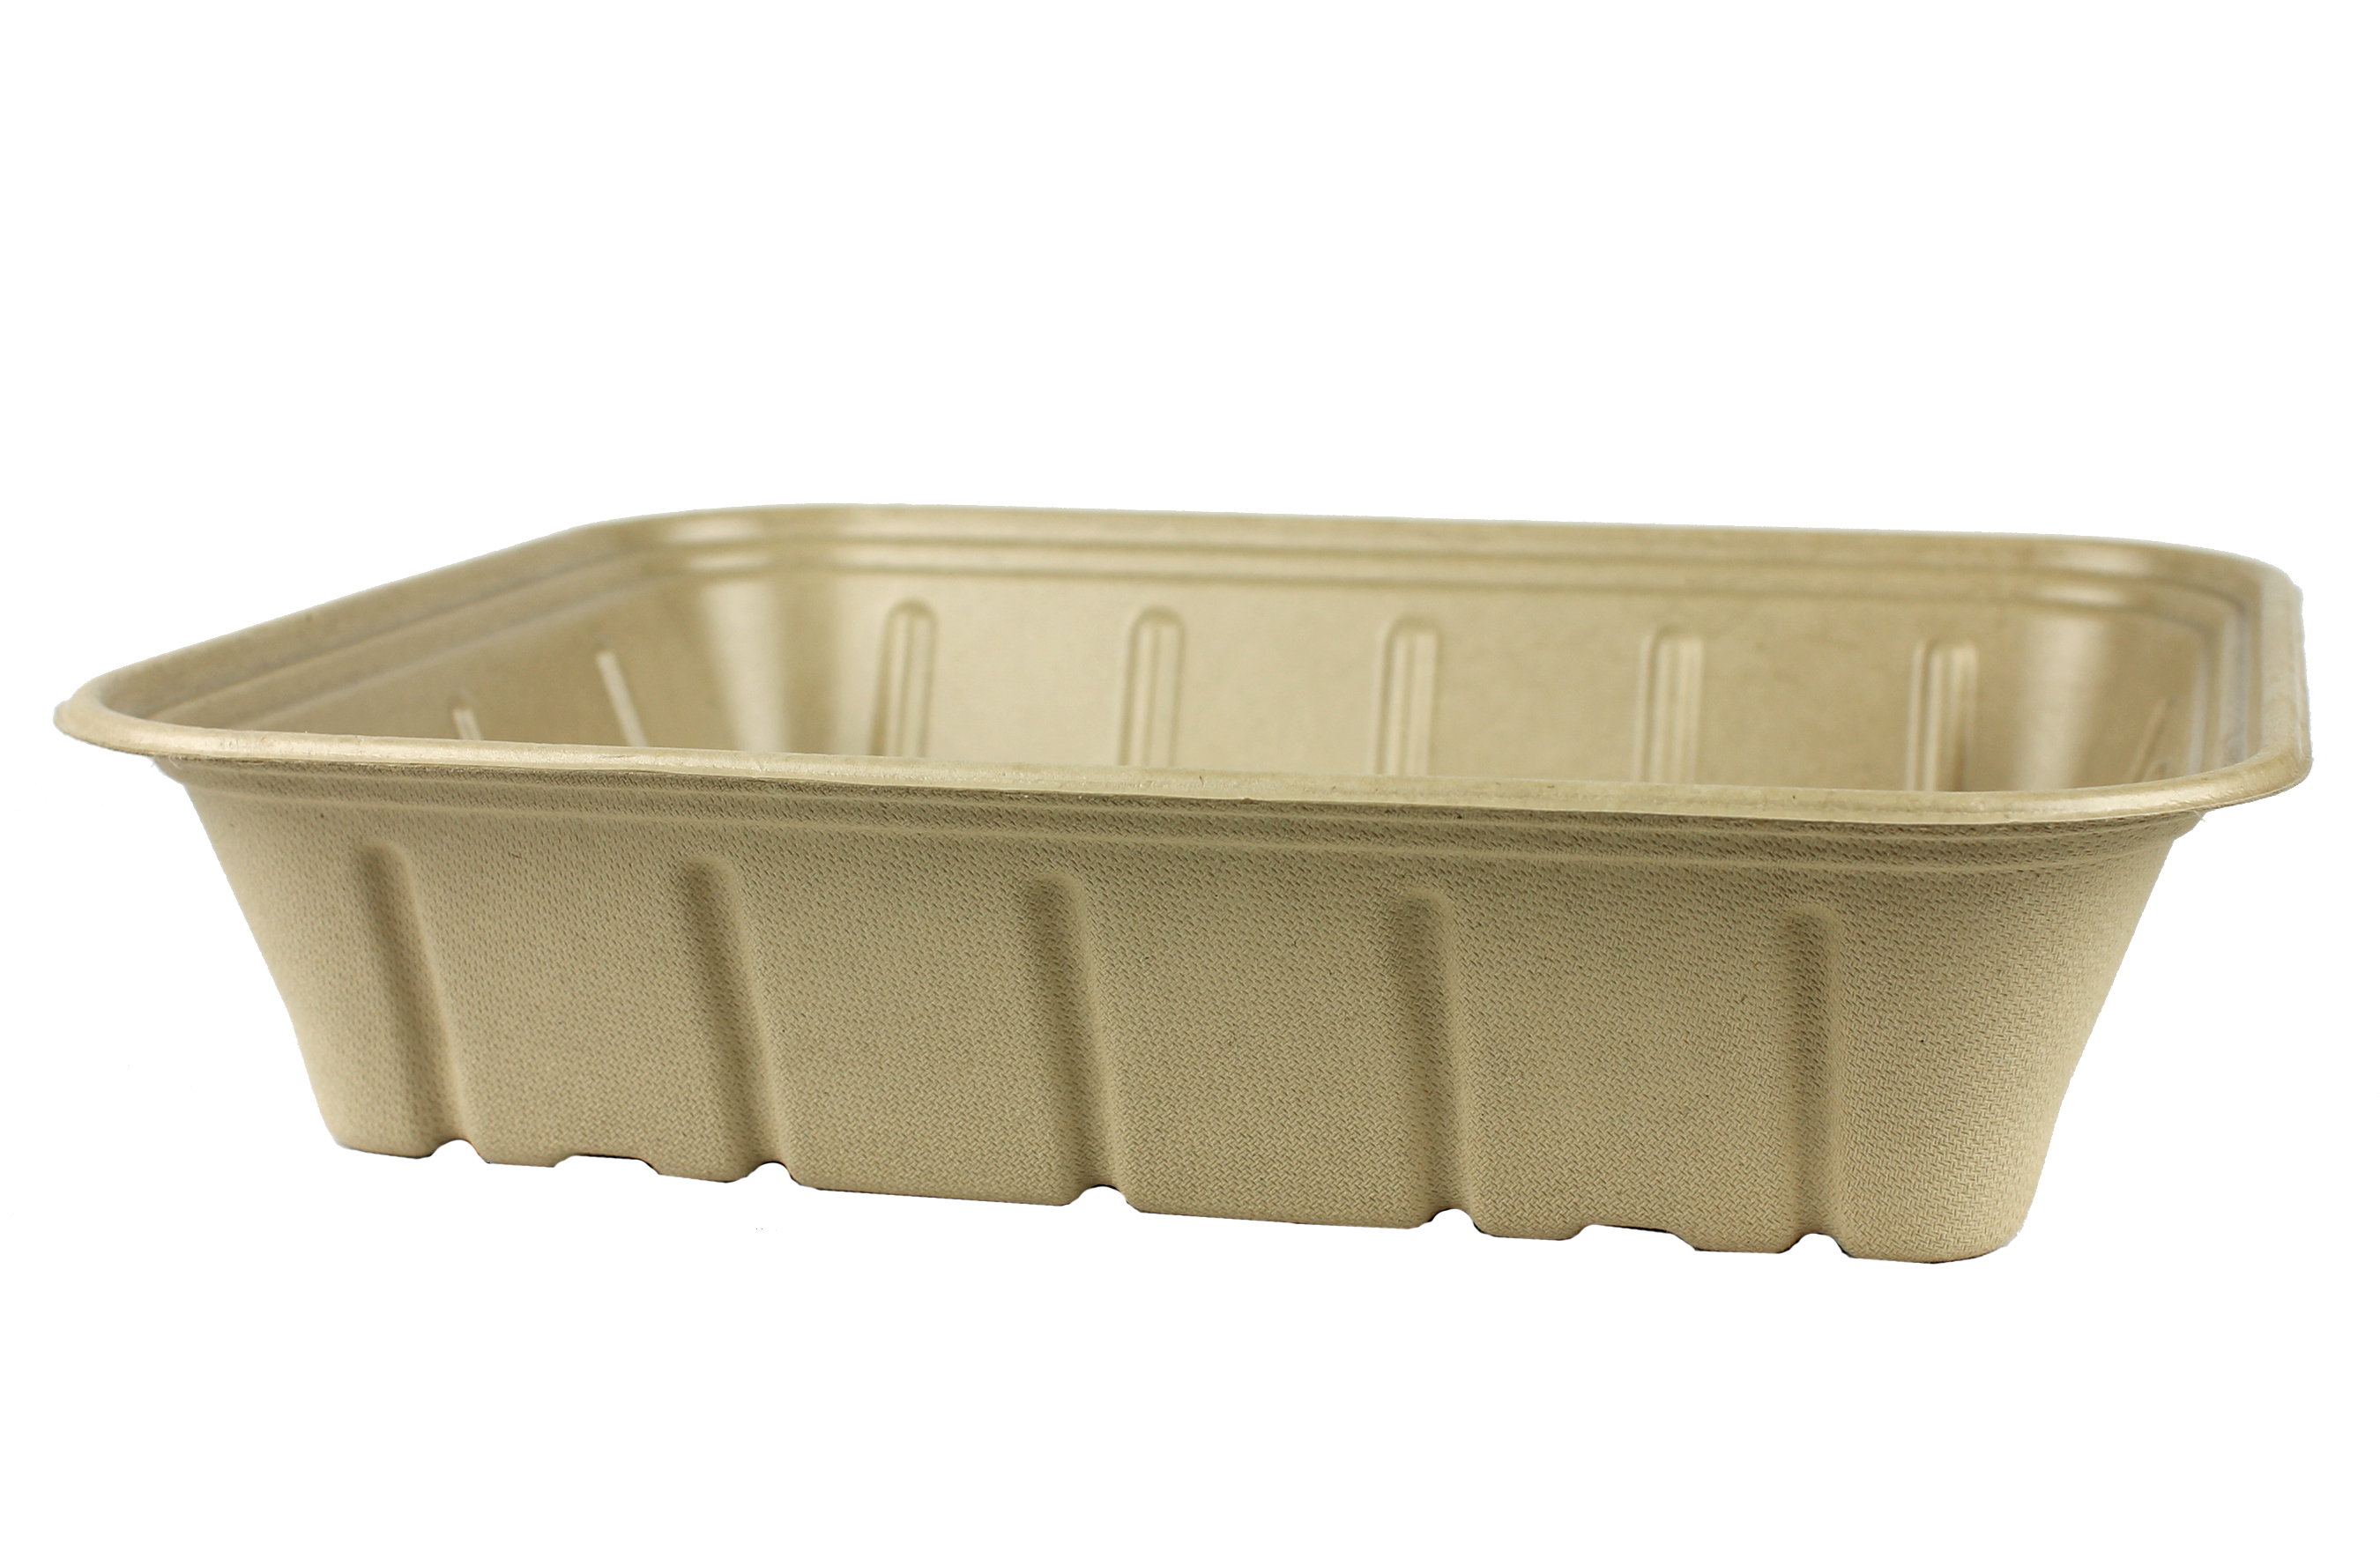 Wheatstraw Catering Pans, Compostable Catering Pans, Plant